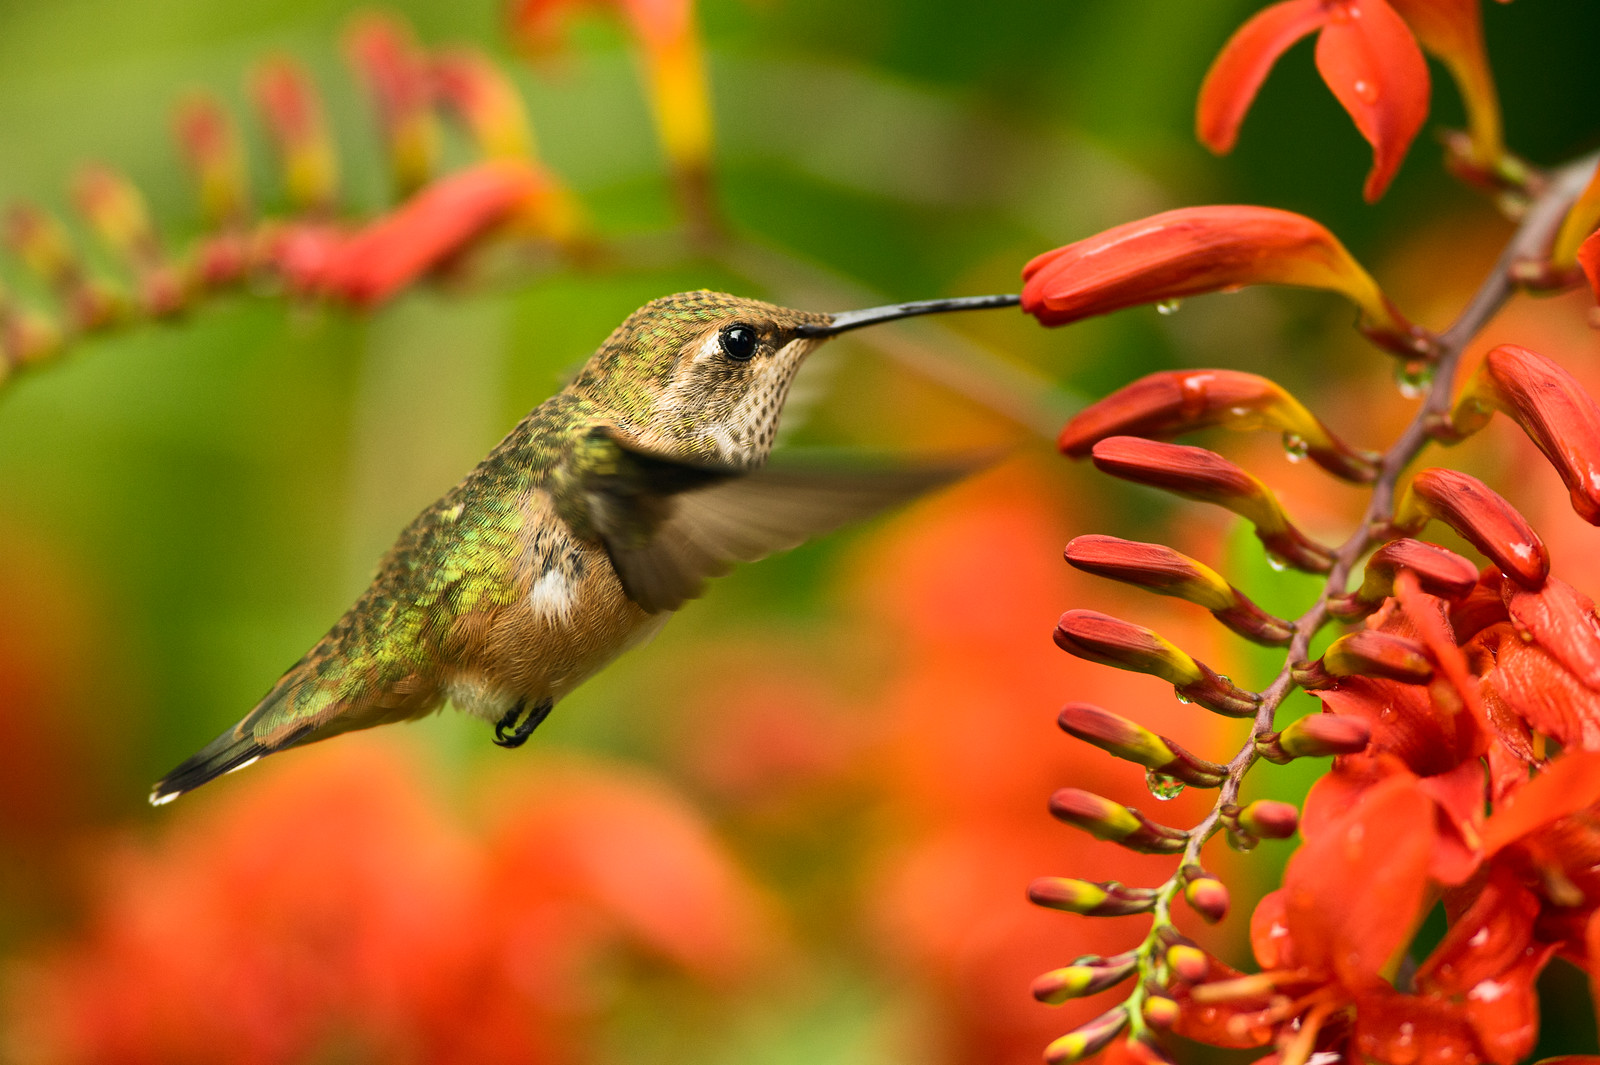 Hummingbird natural light photography